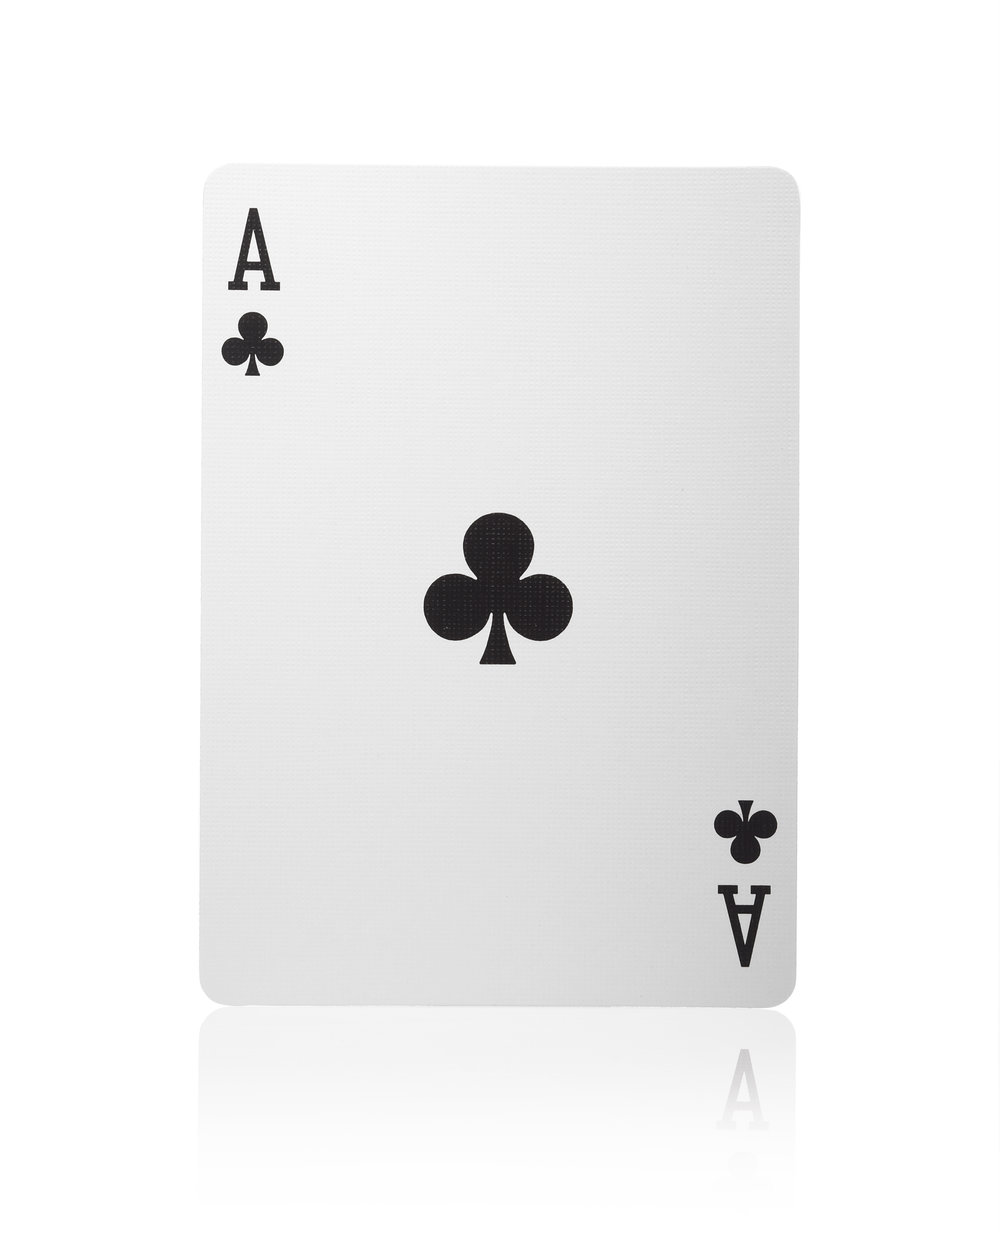 110330-PlayingCards-PlayingCards-012 copy.jpg